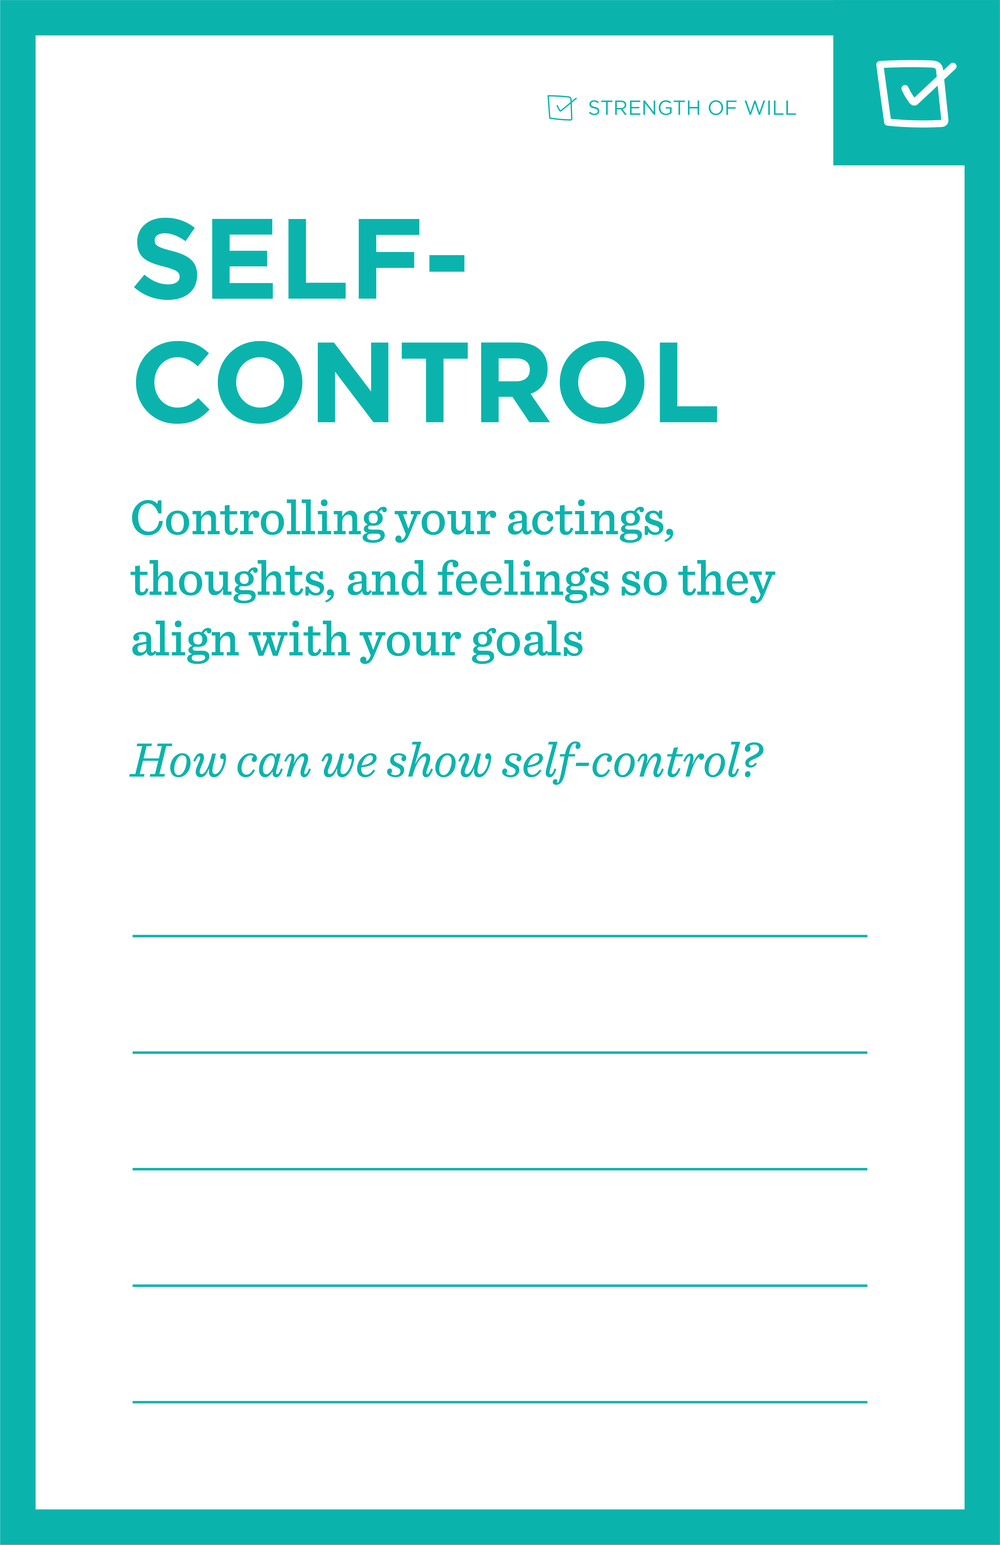 self-control_poster-13.png